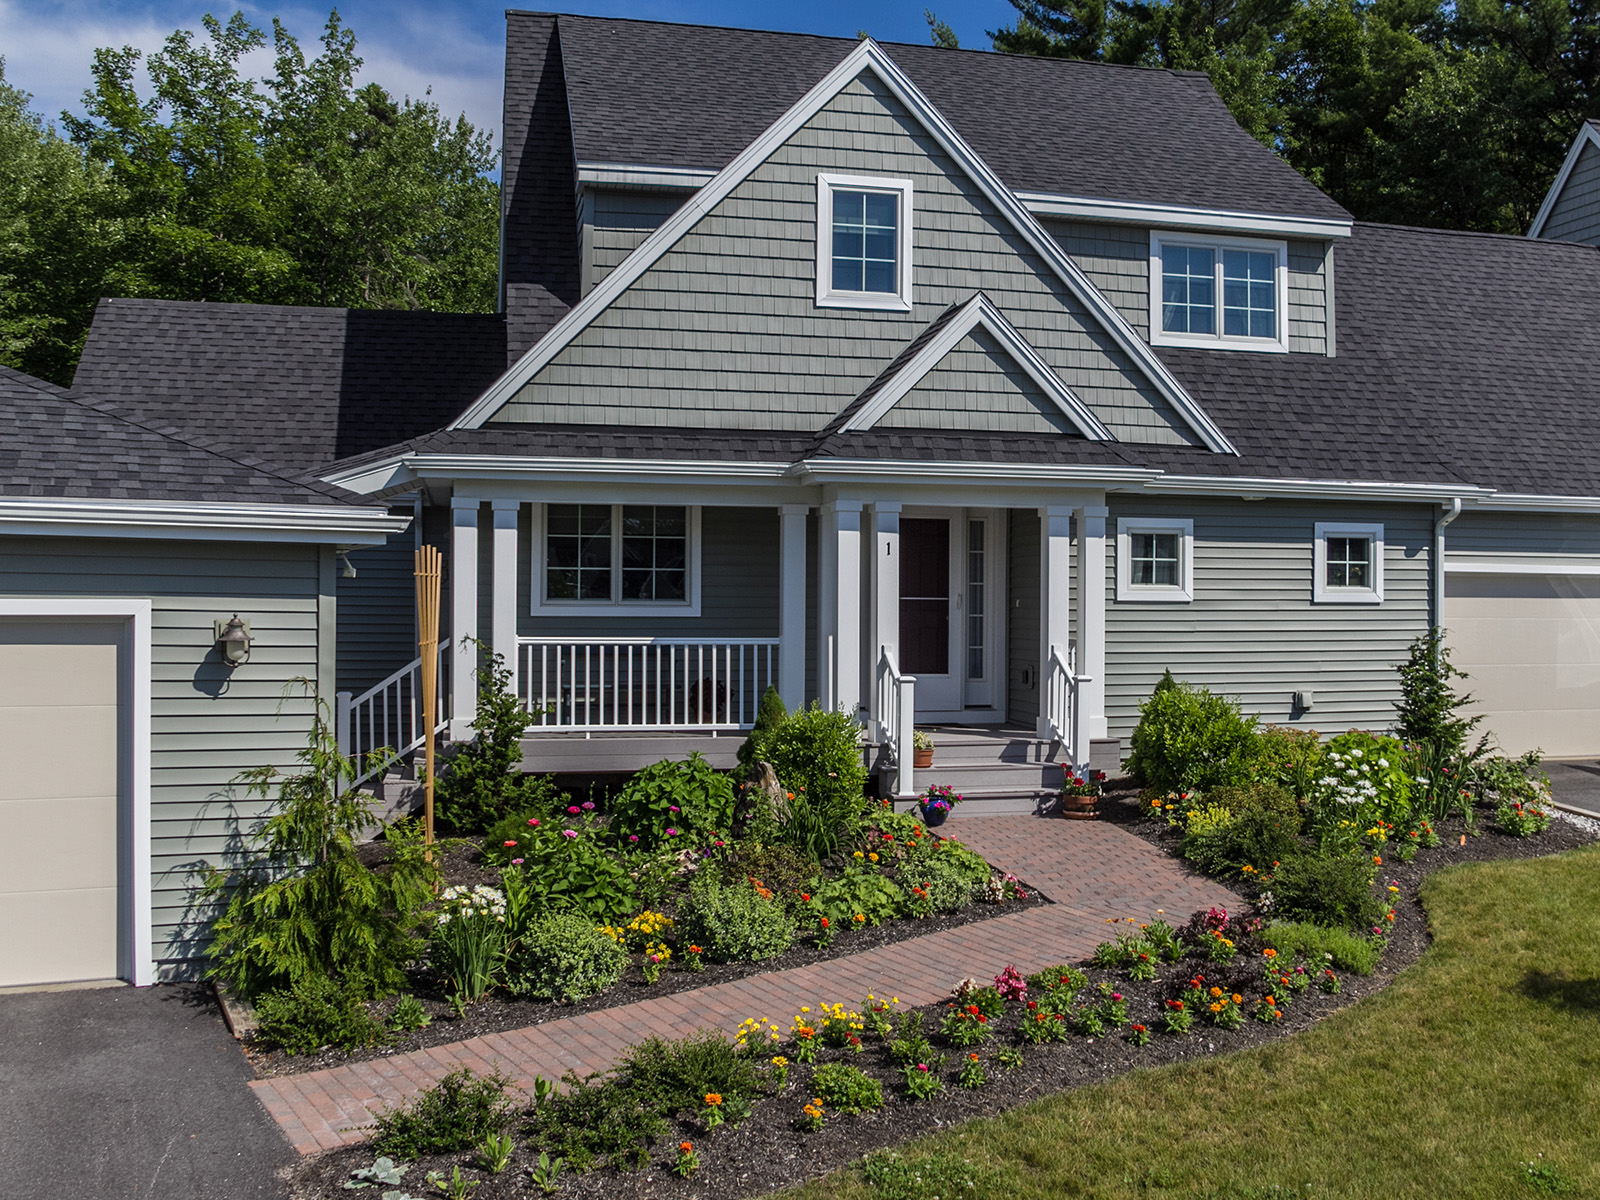 Condominium for Sale at 2 Rock Rose Way ,# 81 2 Rock Rose Way # 81 Brunswick, Maine 04011 United States